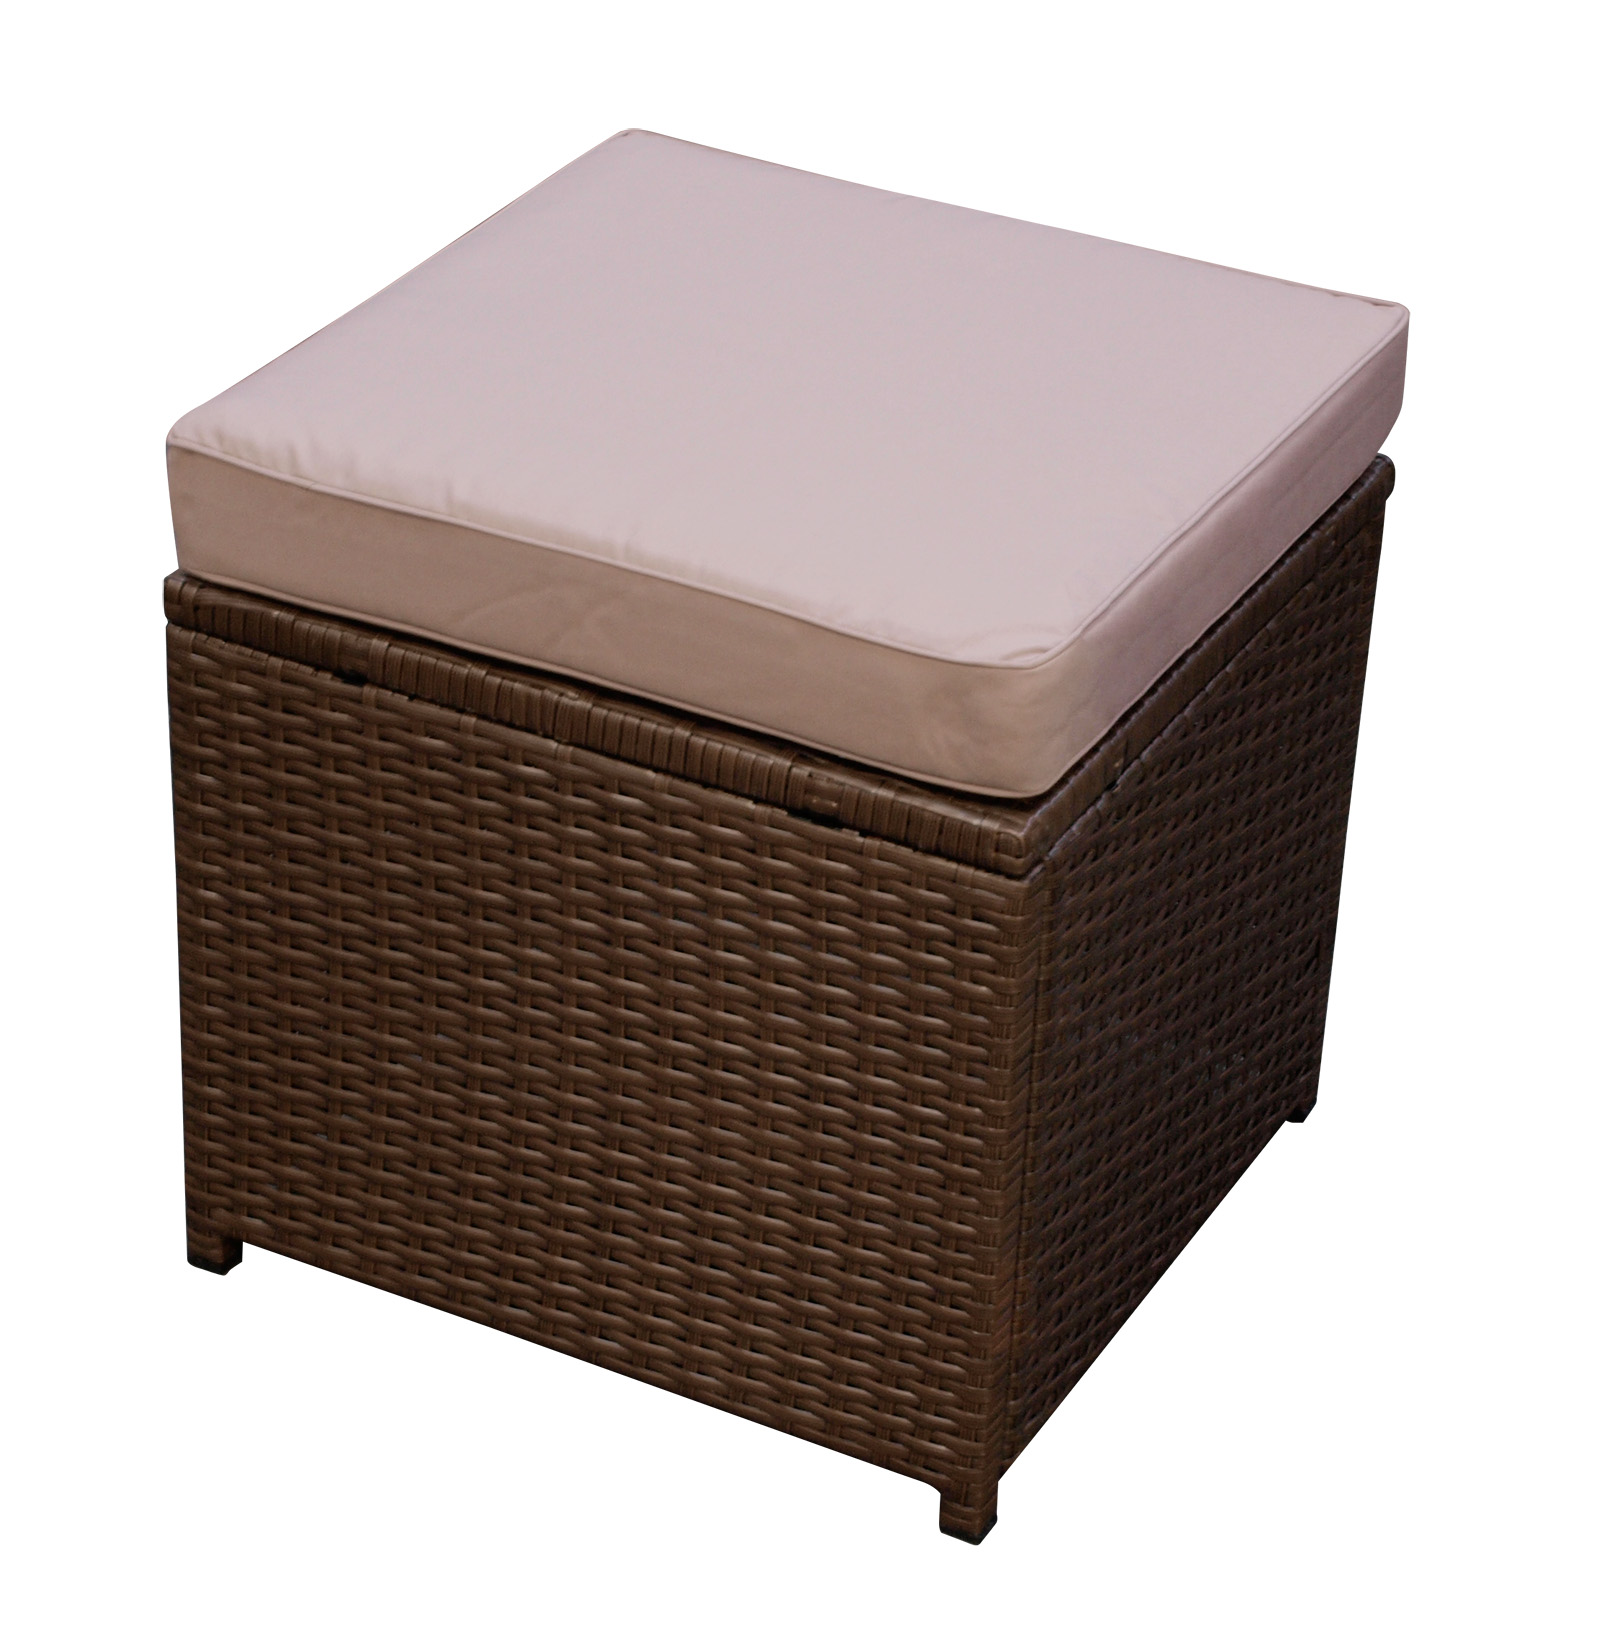 hocker gartenhocker gartenm bel sitzhocker messina rattan braun mit polster ebay. Black Bedroom Furniture Sets. Home Design Ideas